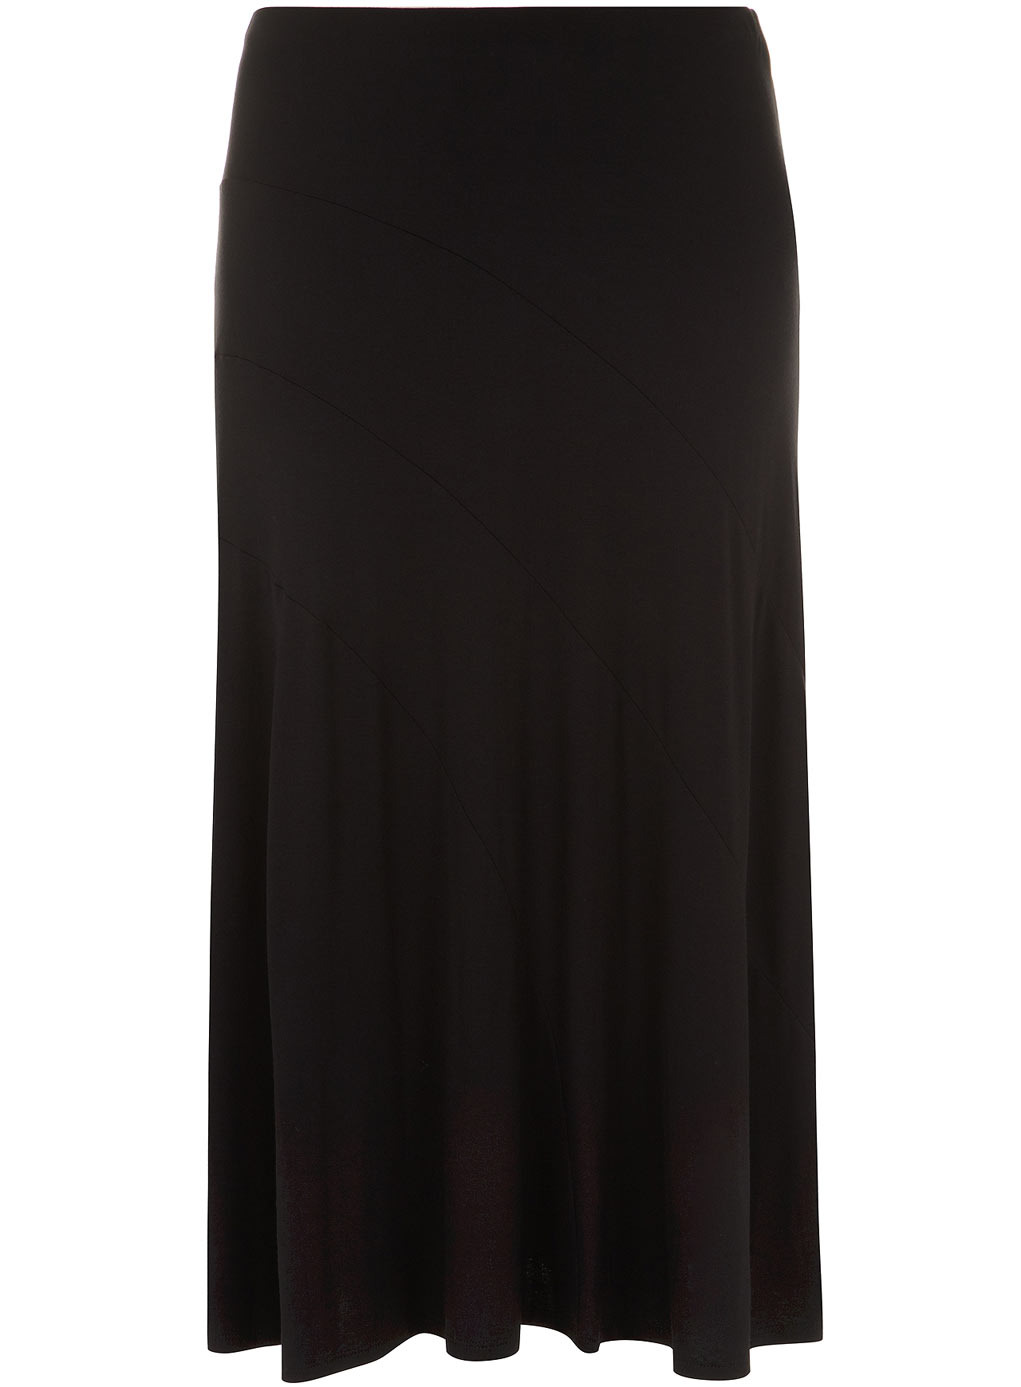 Black Maxi Skirt - pattern: plain; length: ankle length; fit: loose/voluminous; waist: high rise; predominant colour: black; occasions: casual, creative work; style: maxi skirt; fibres: viscose/rayon - stretch; pattern type: fabric; texture group: jersey - stretchy/drapey; season: s/s 2014